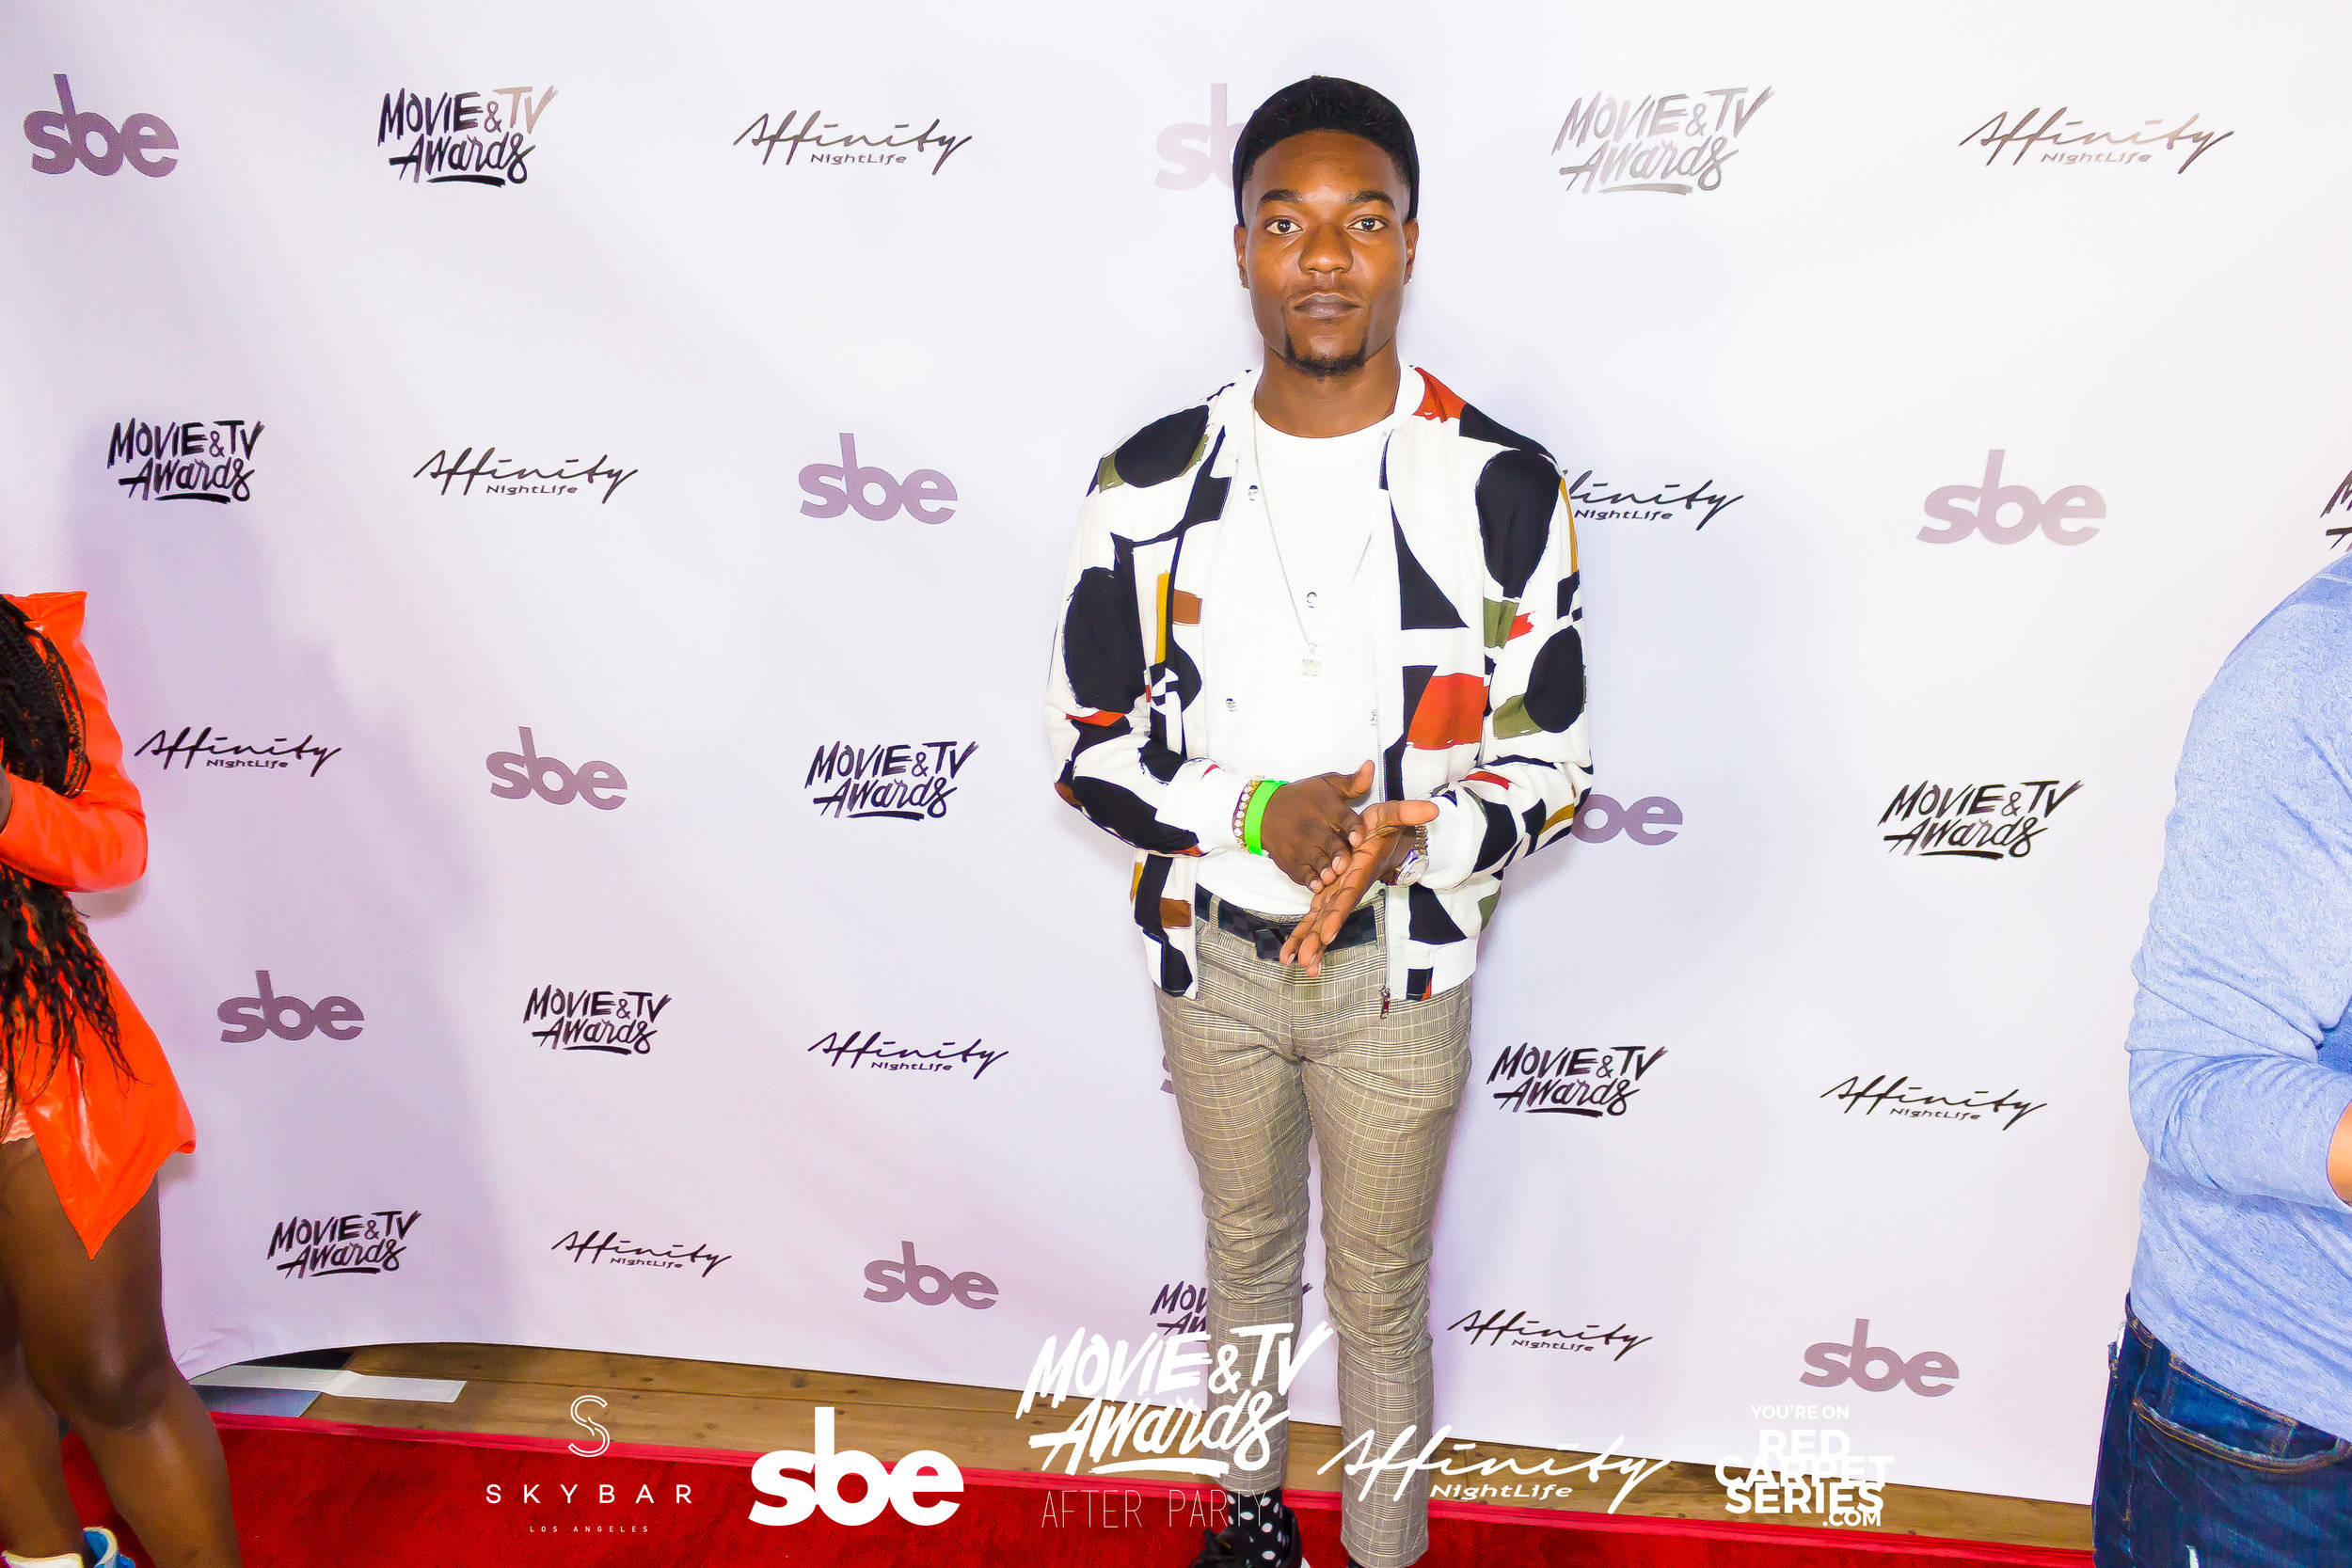 Affinity Nightlife MTV Movie & TV Awards After Party - Skybar at Mondrian - 06-15-19 - Vol. 1_49.jpg